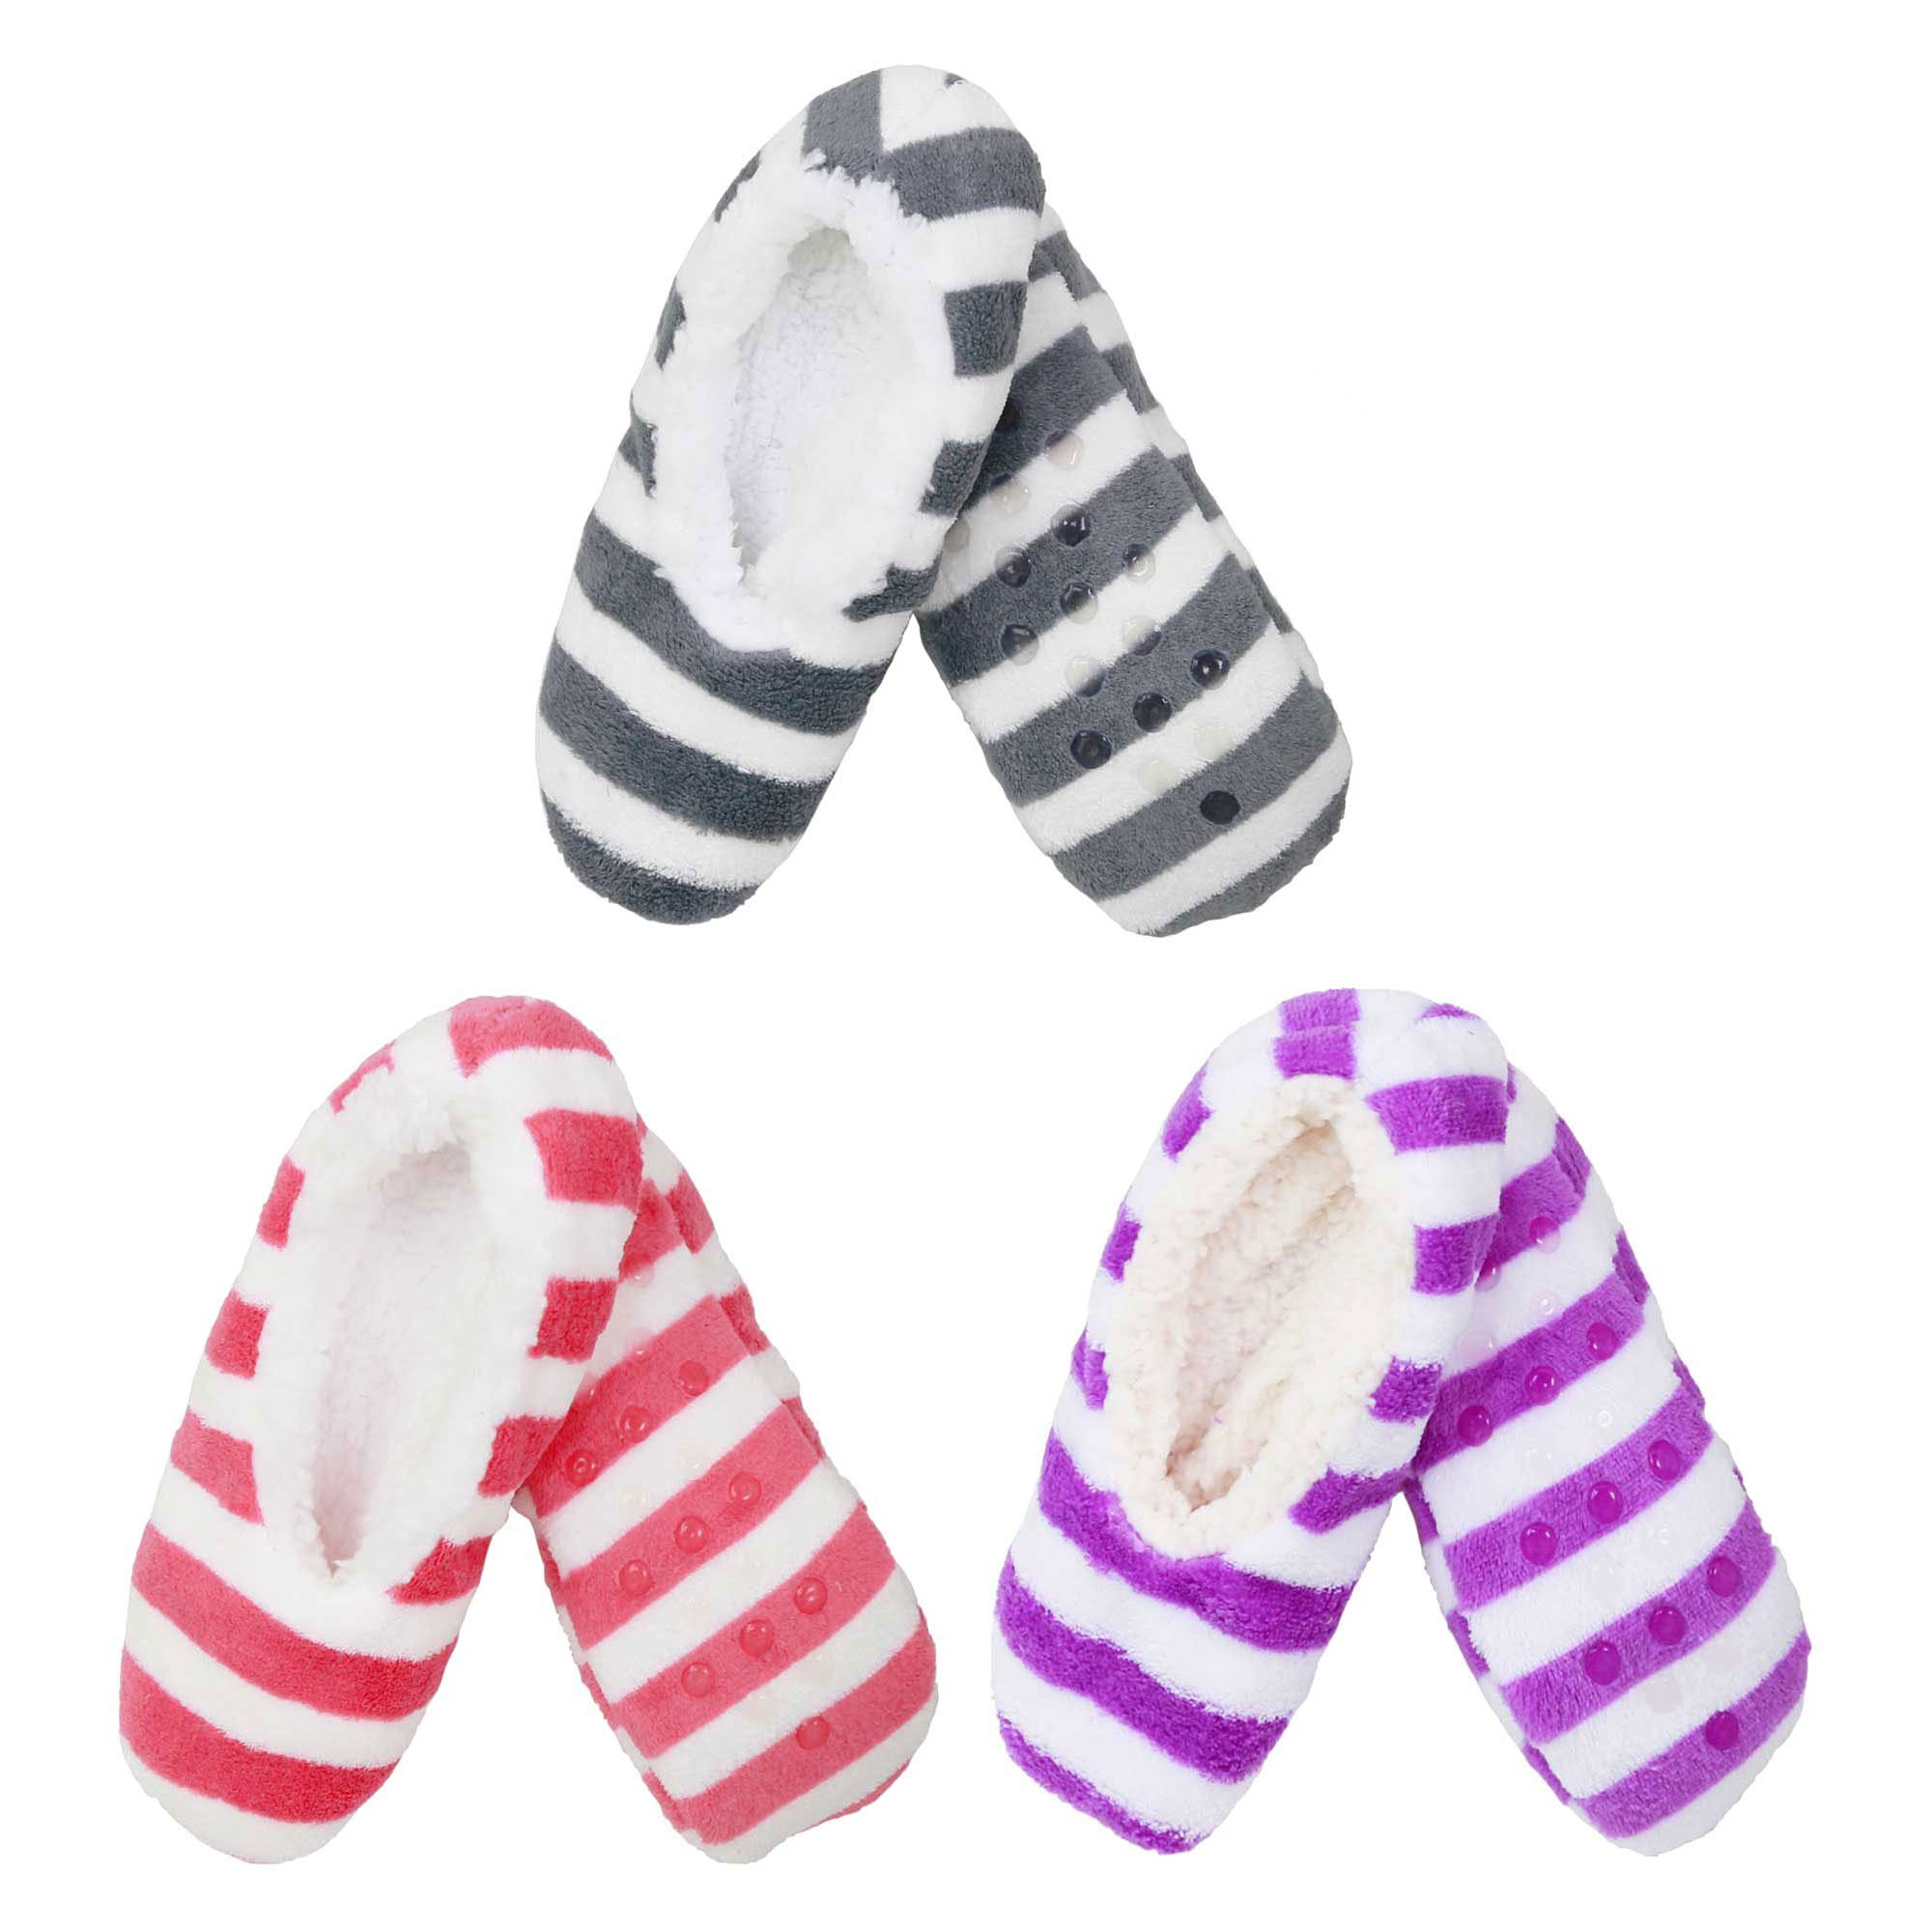 3 Pairs Adult Size Large Super Soft Warm Cozy Fuzzy Slippers Non-Slip Lined Socks, Assortment N13 by BambooMN (Image #1)